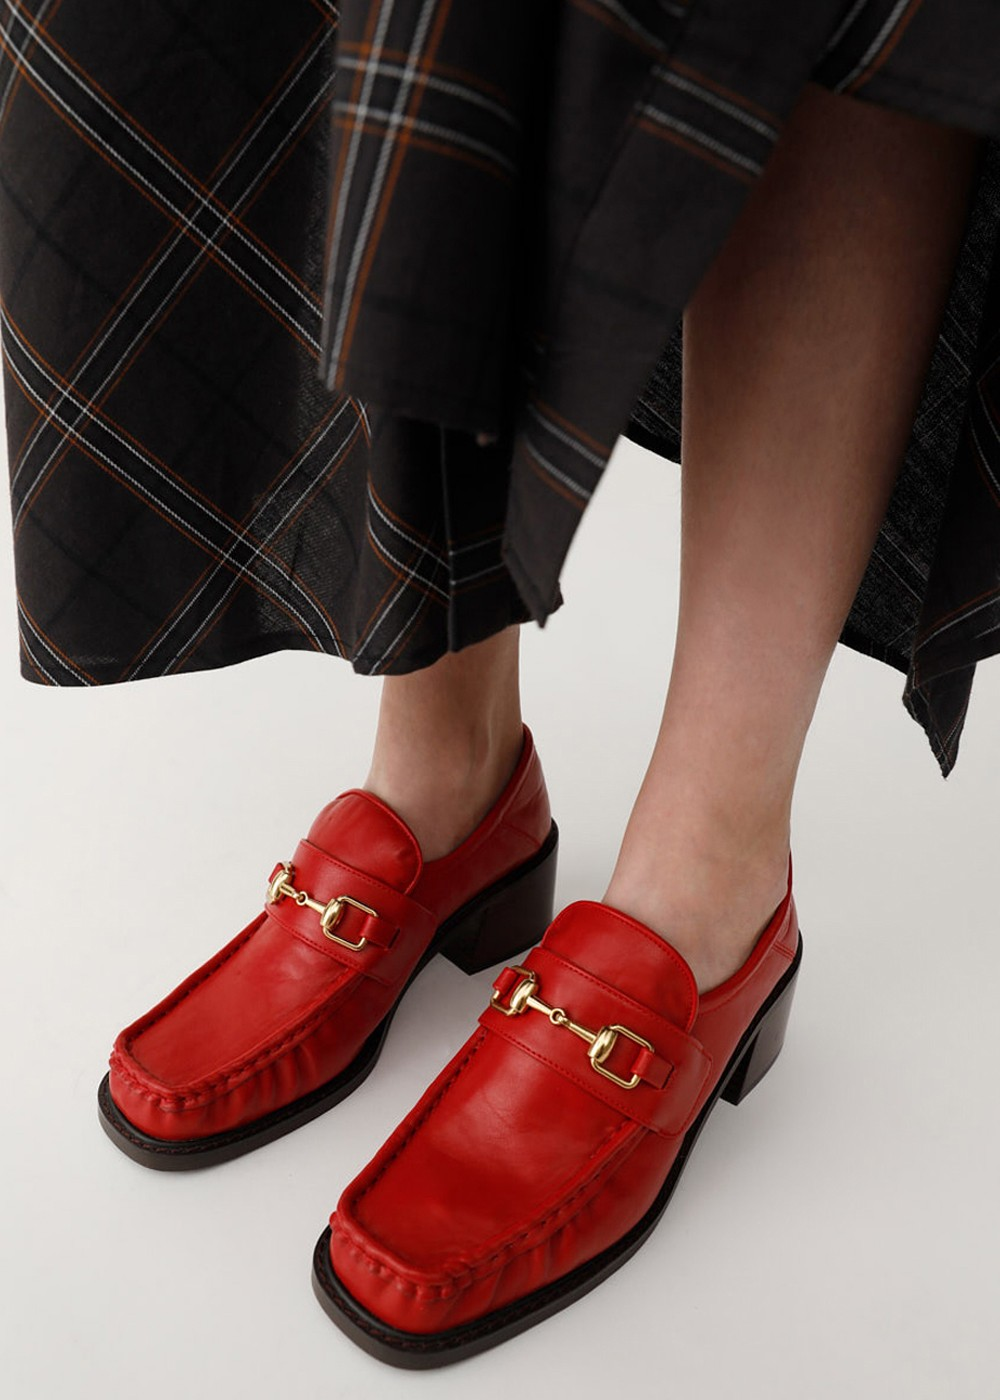 【最大60%OFF】BLOCK HEEL LOAFERS|RED|その他シューズ|MOUSSY